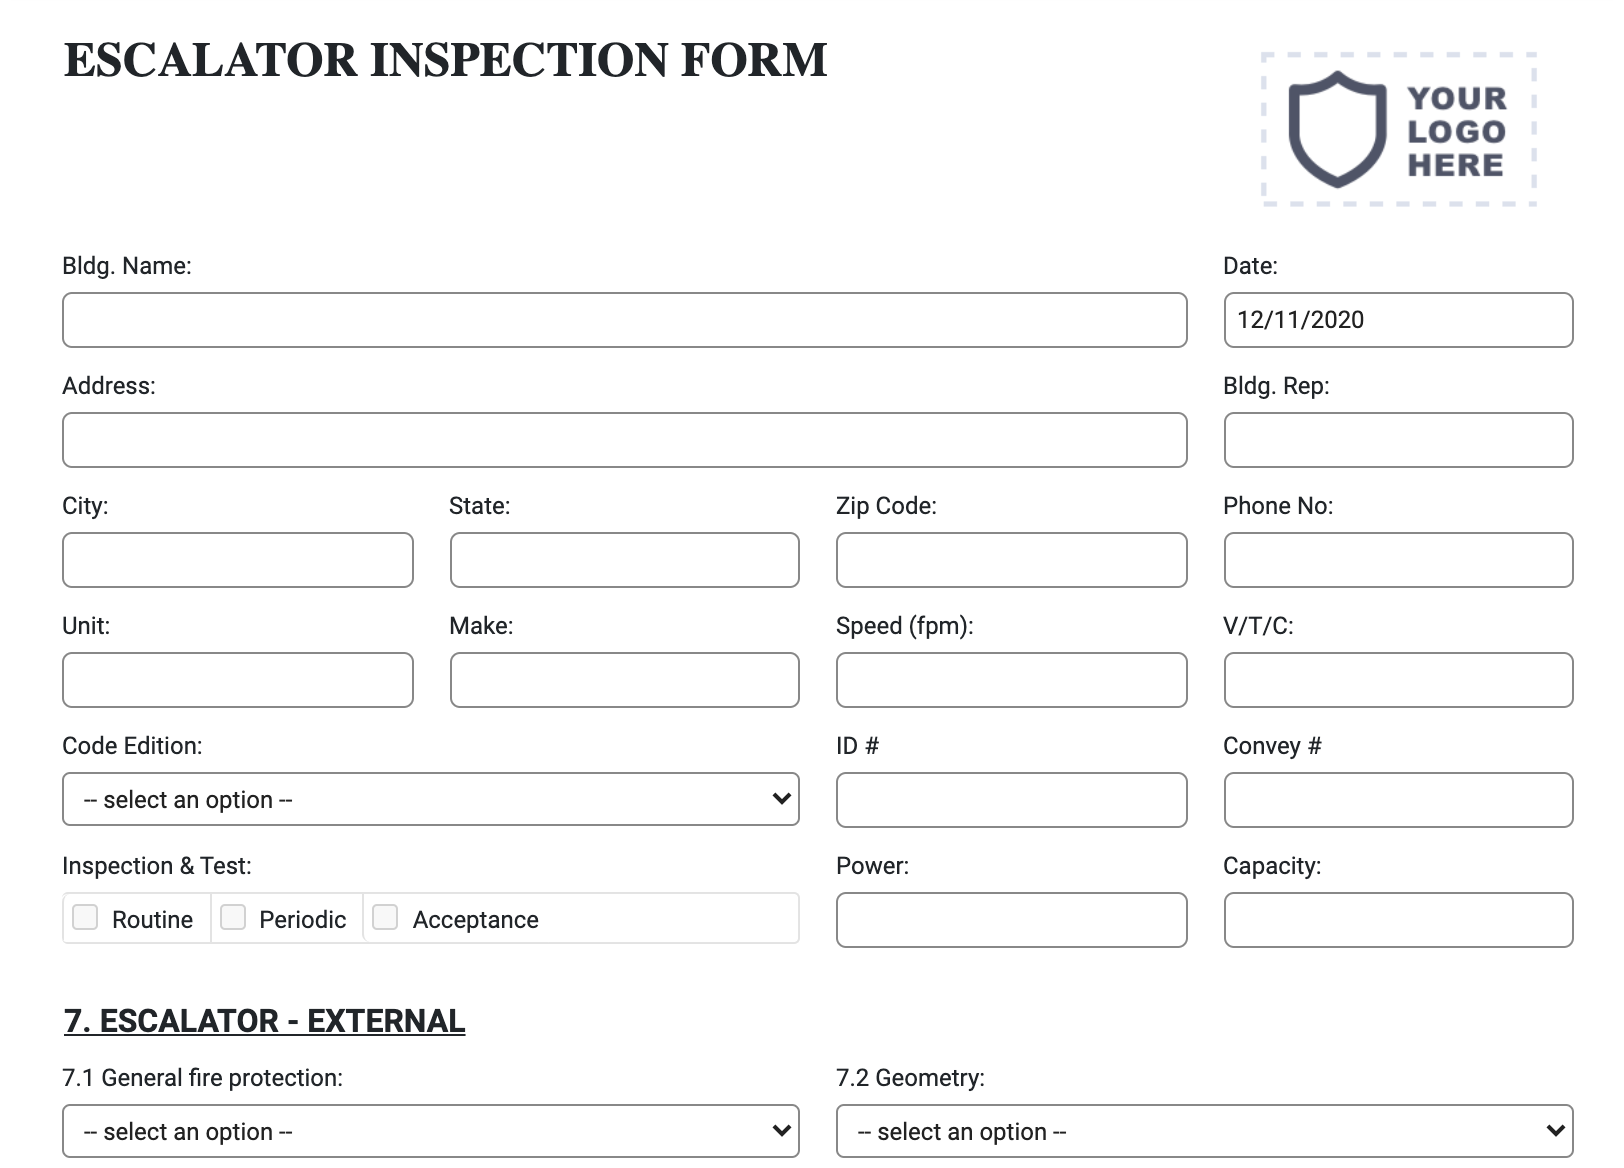 escalator-inspection-form